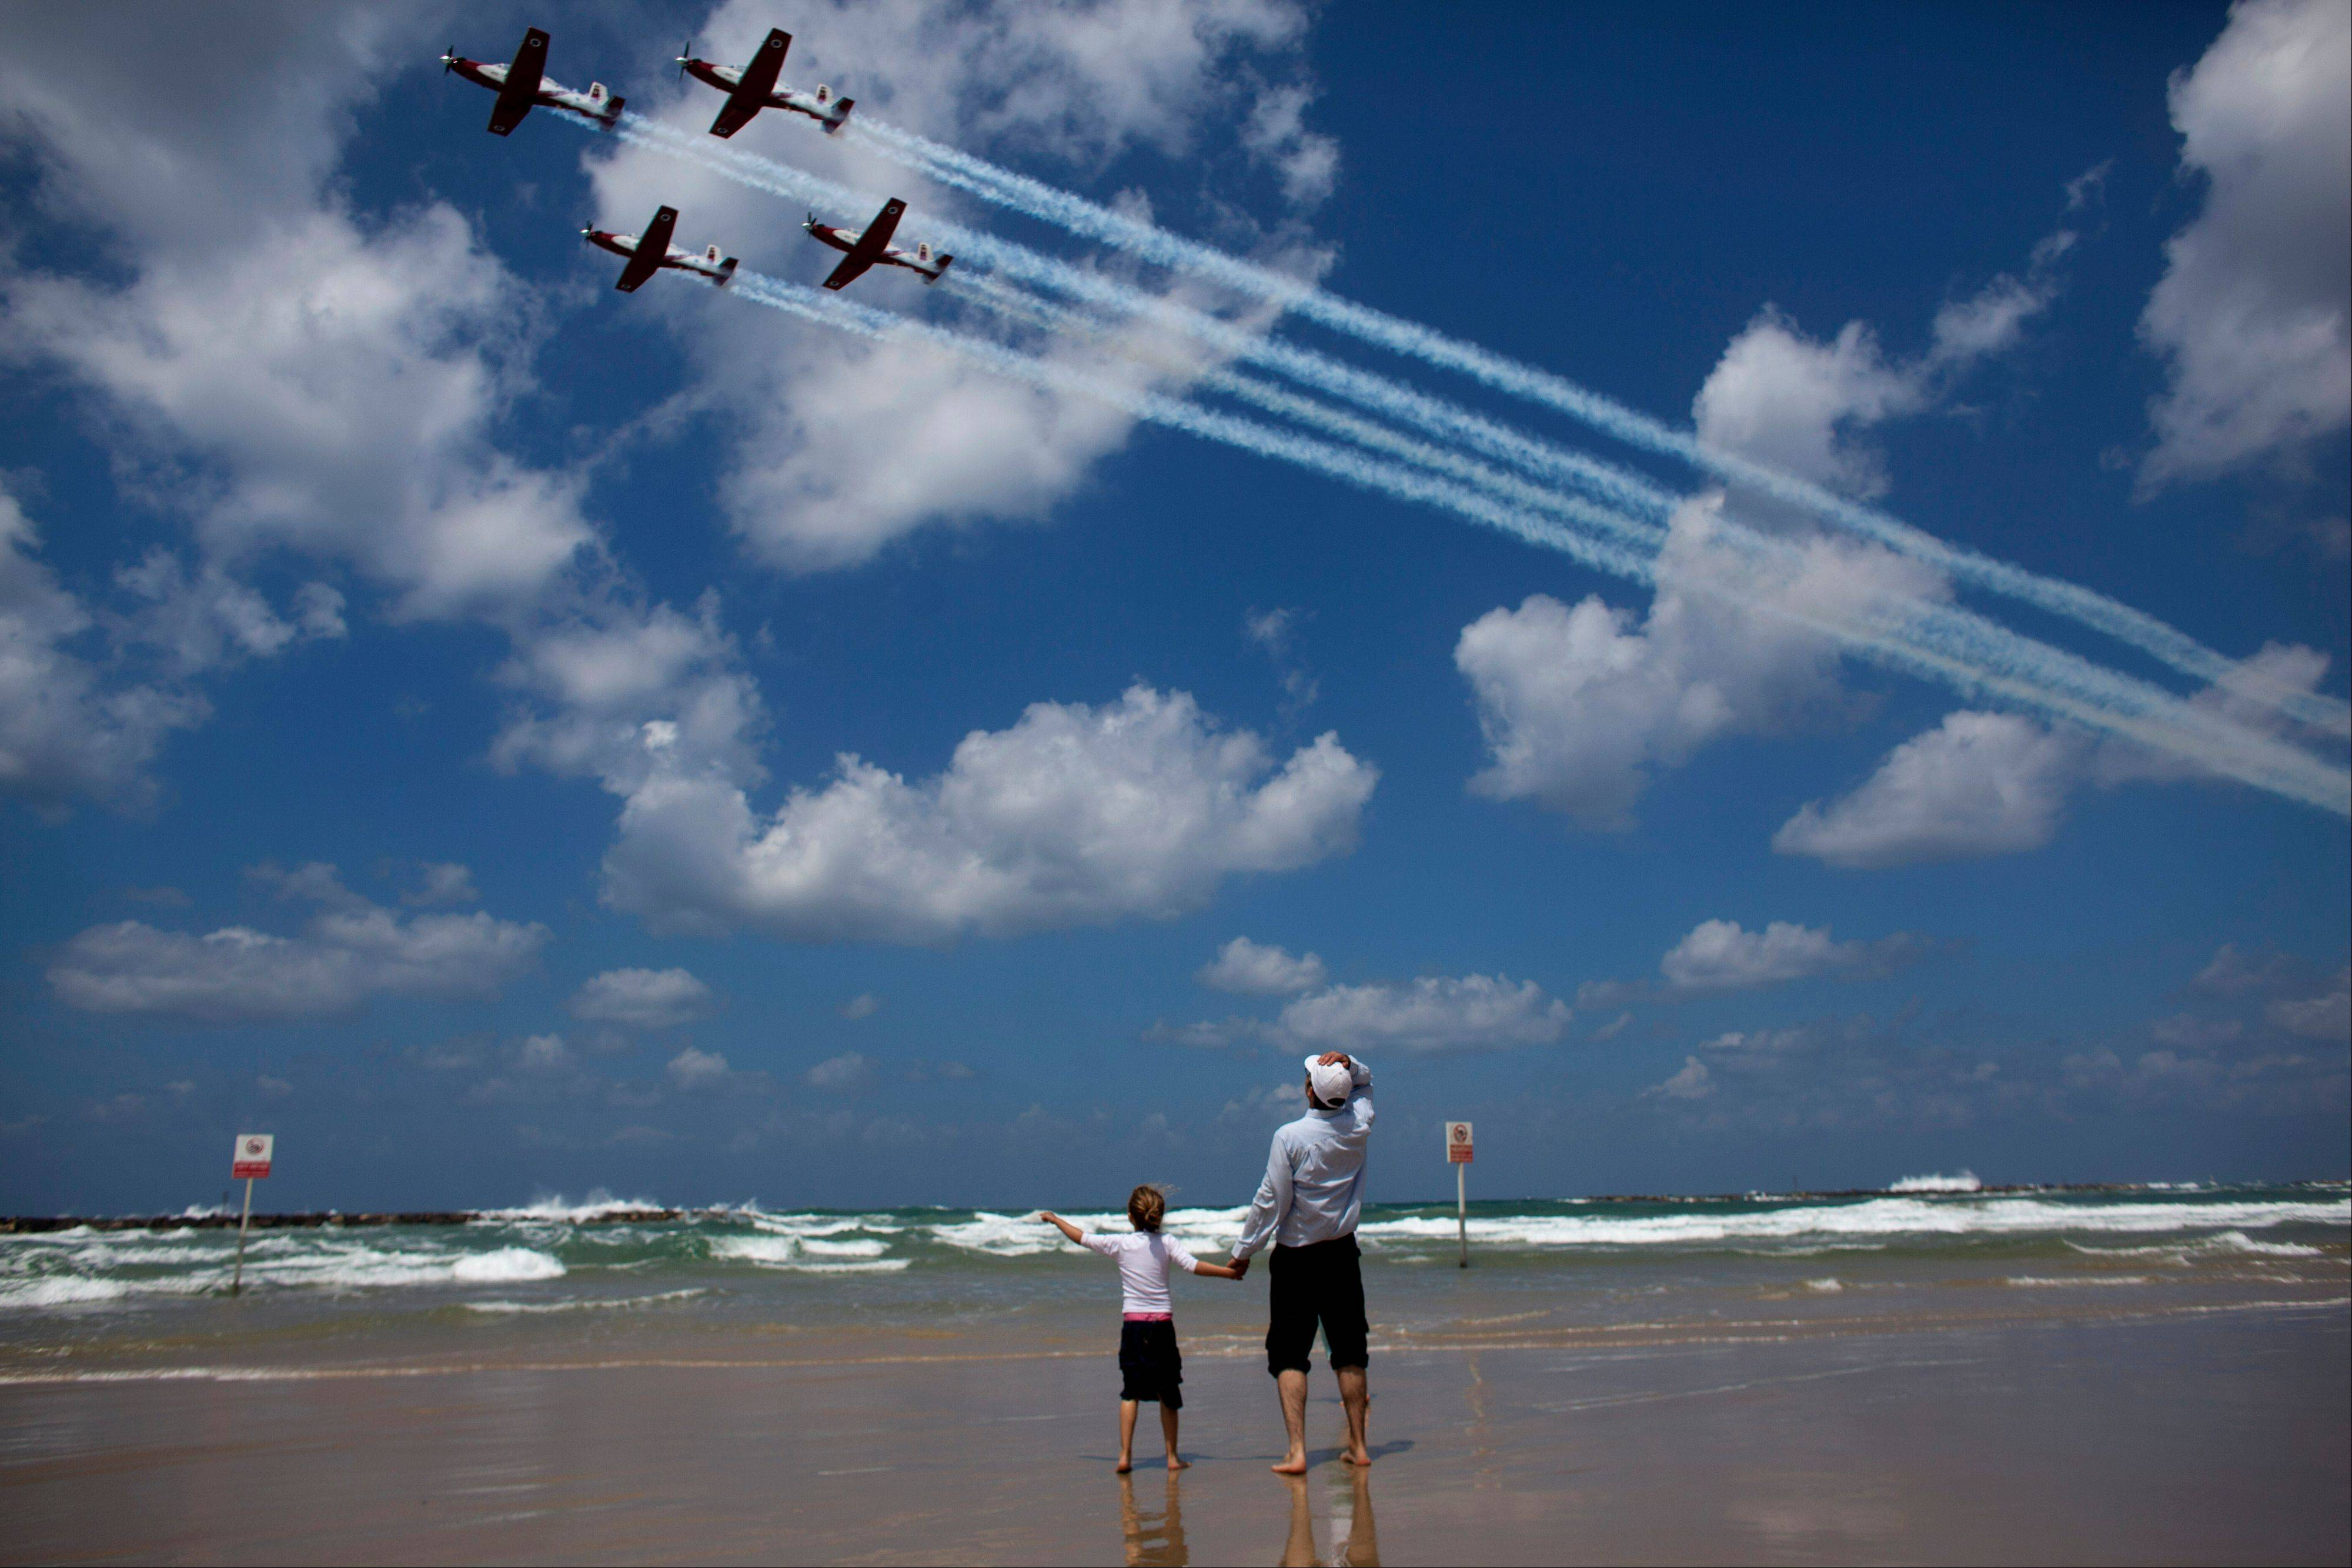 Israelis watch an air show Tuesday during Independence Day in Tel Aviv.